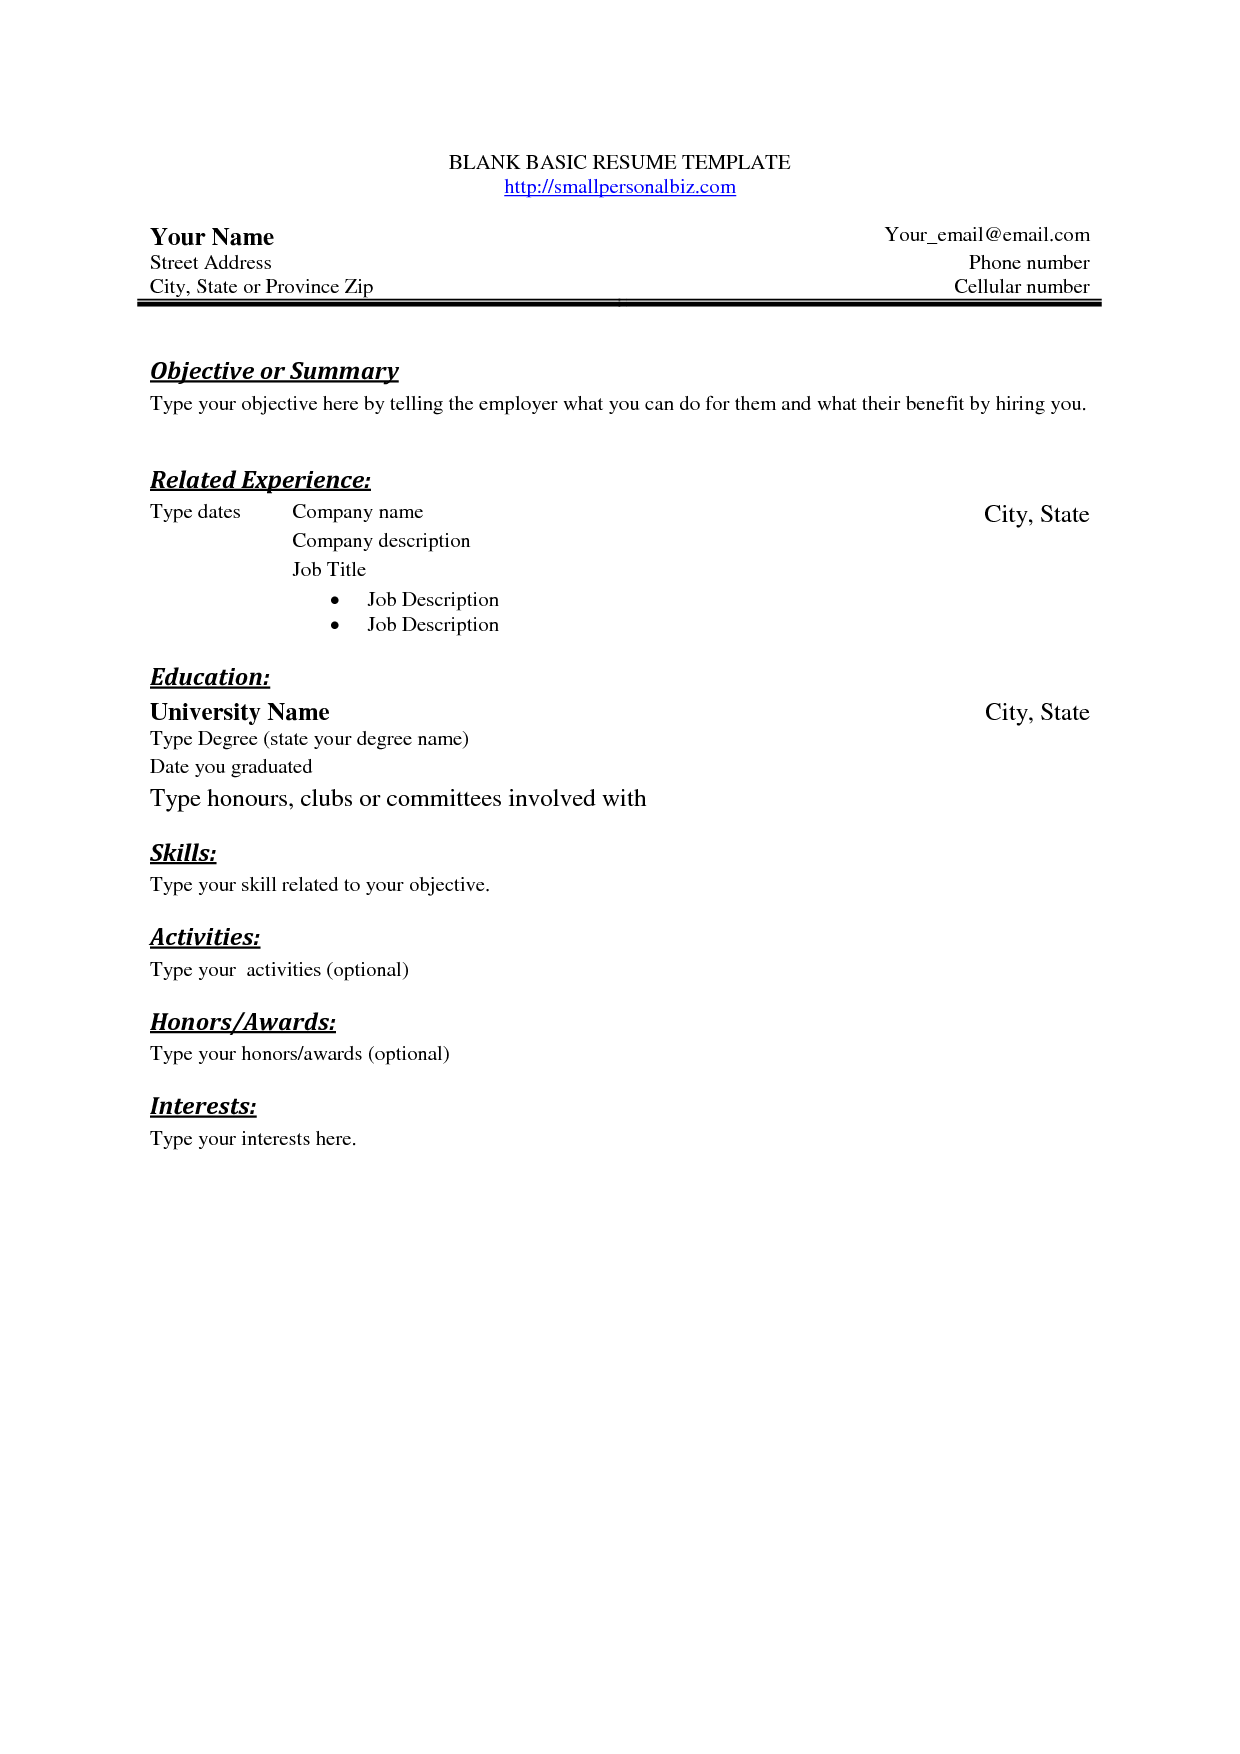 basic blank resume template basic sample resume basic blank resume template basic sample resume